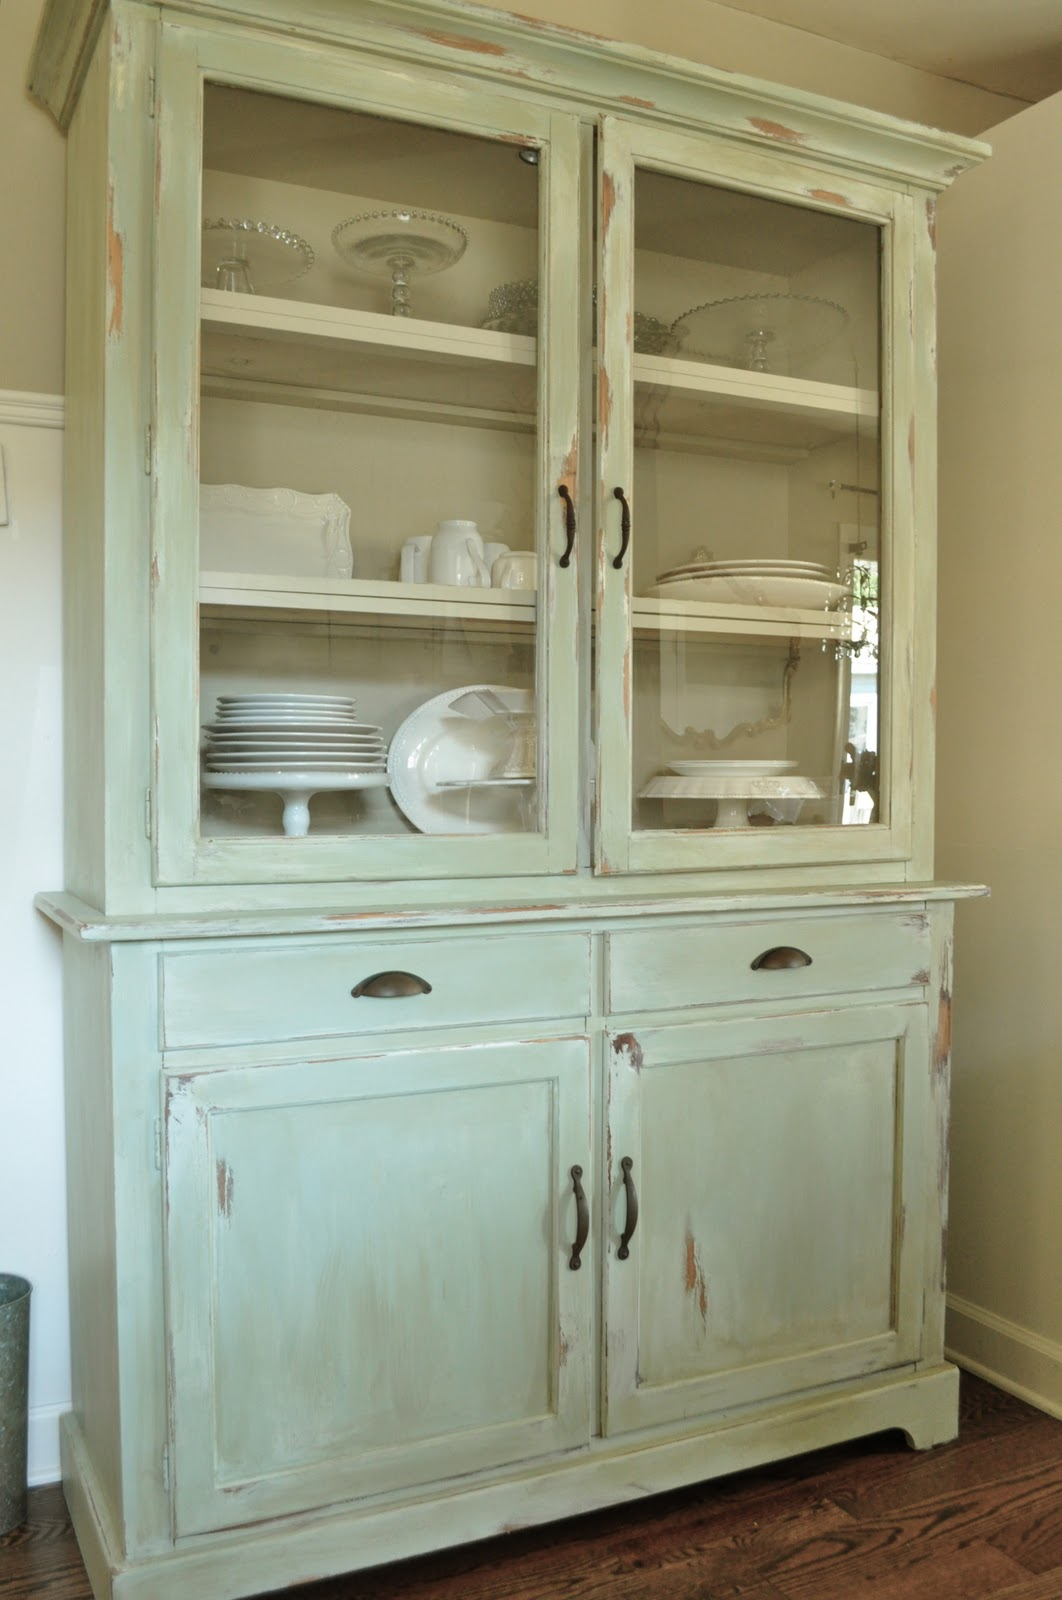 kitchen hutch revealbefore and after kitchen hutch cabinets how to make a new peice of furinture look old with paint and distressing